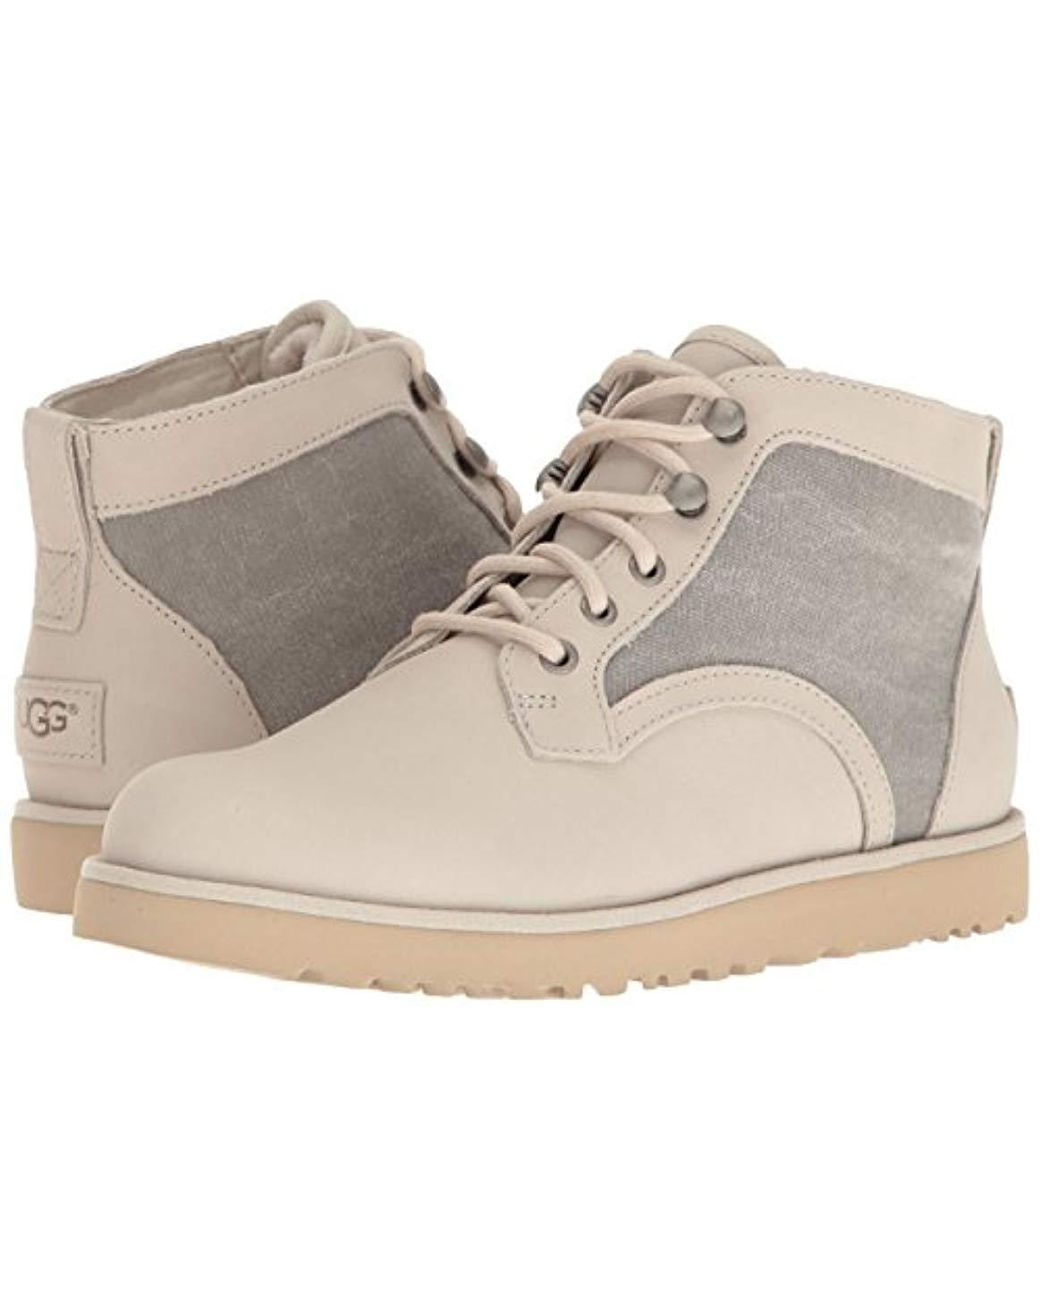 33beb992be6 Women's Natural Bethany Canvas Winter Boot